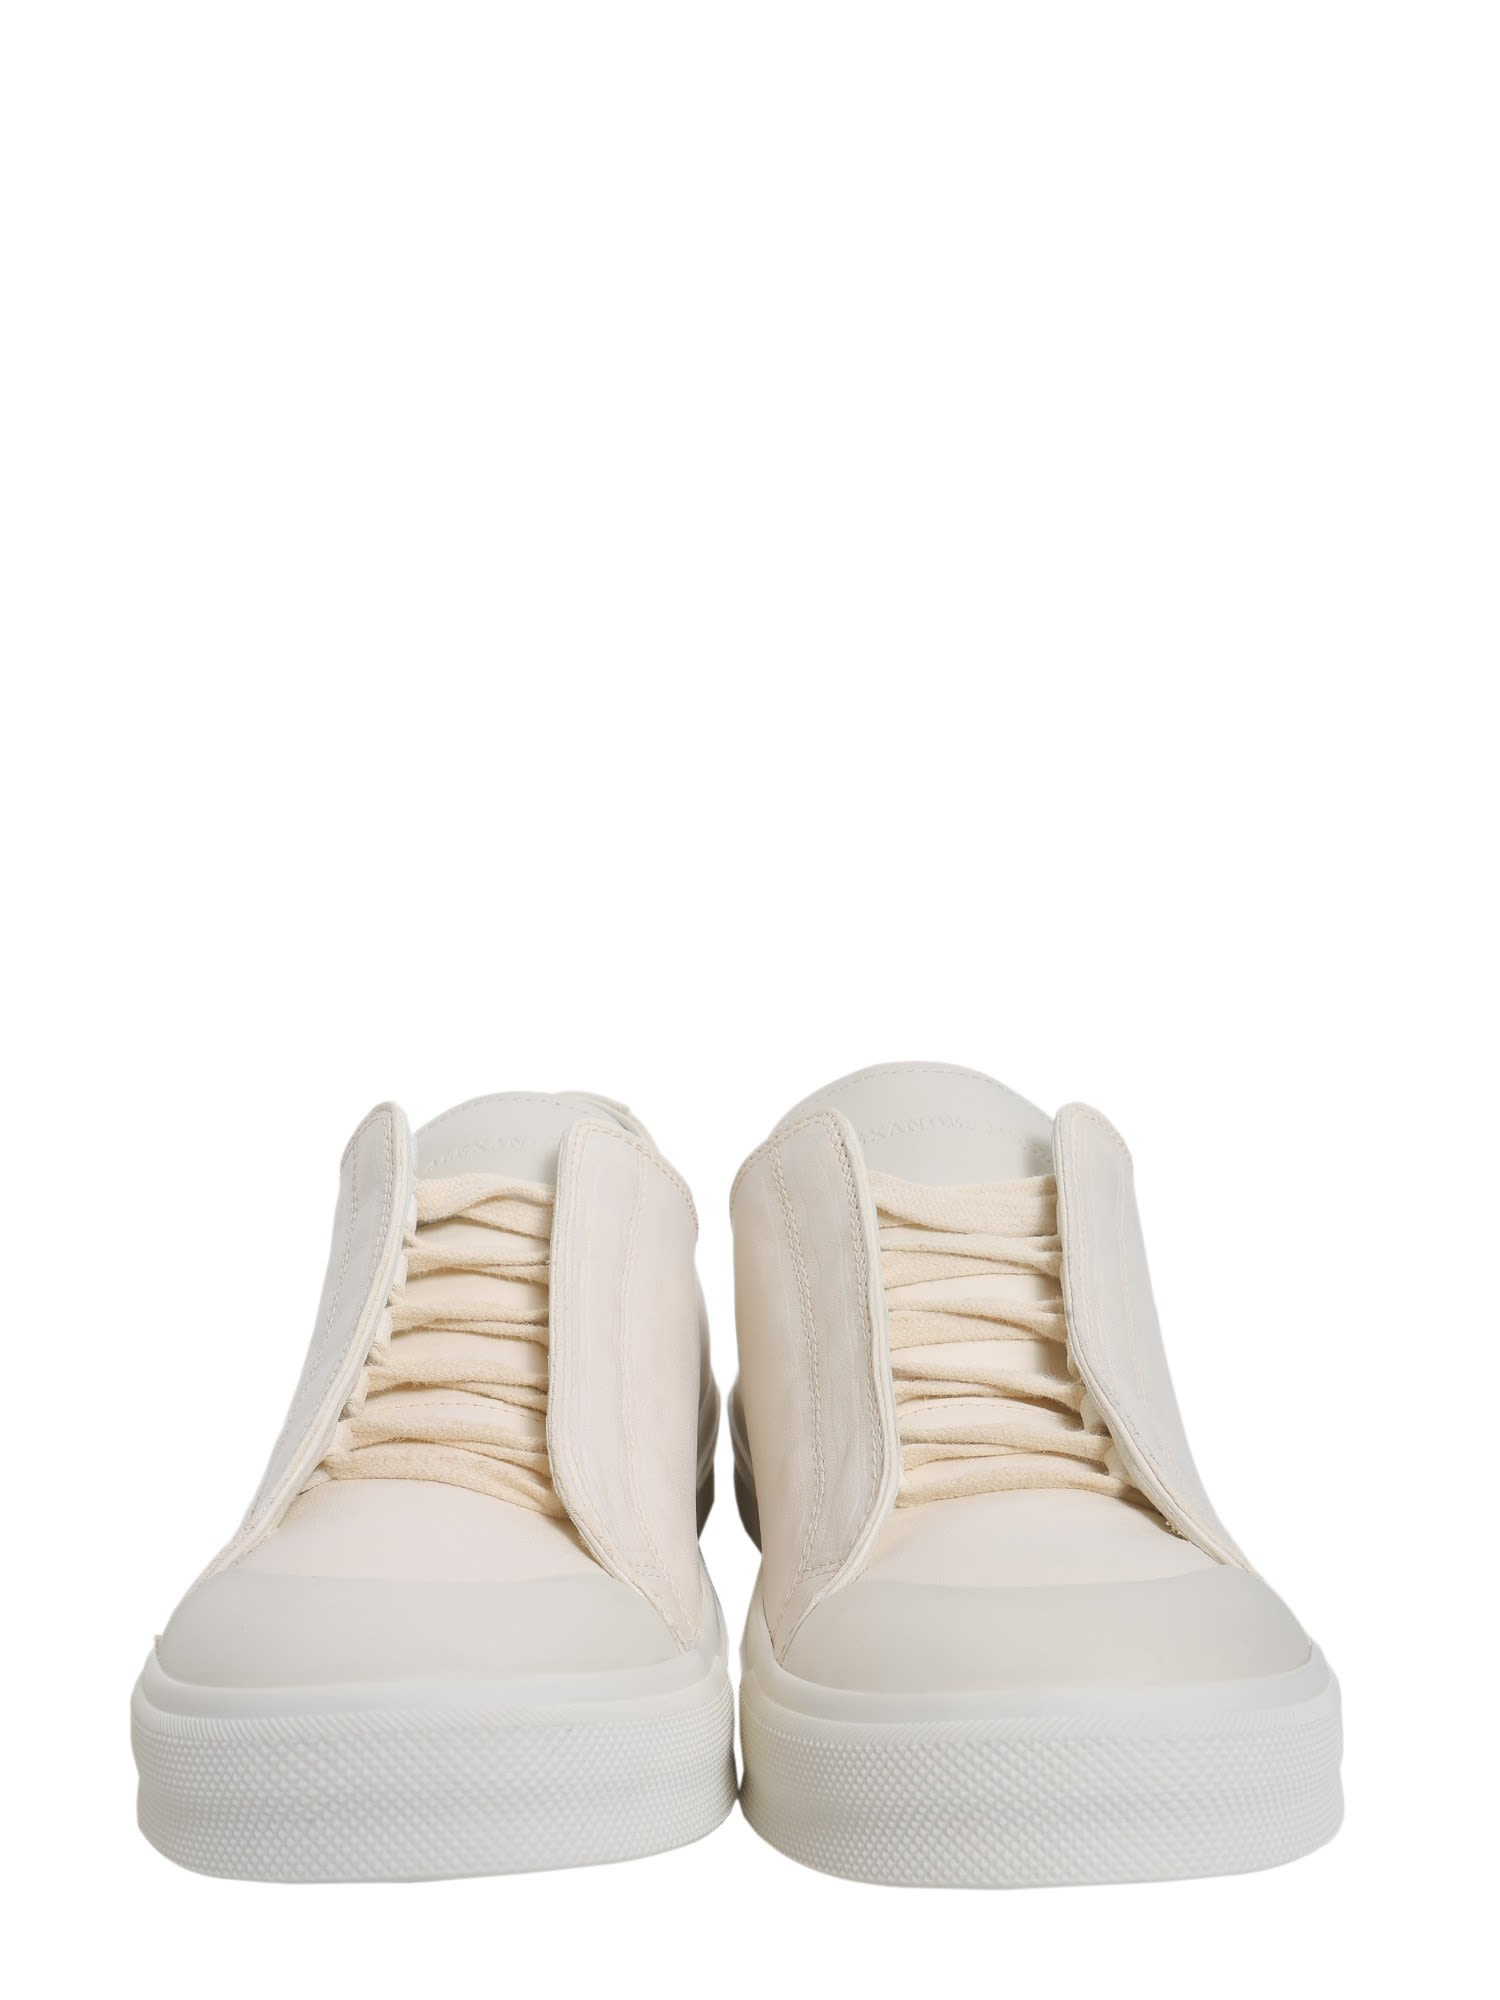 Alexander McQueen Sneakers with leather cap toe RgulR